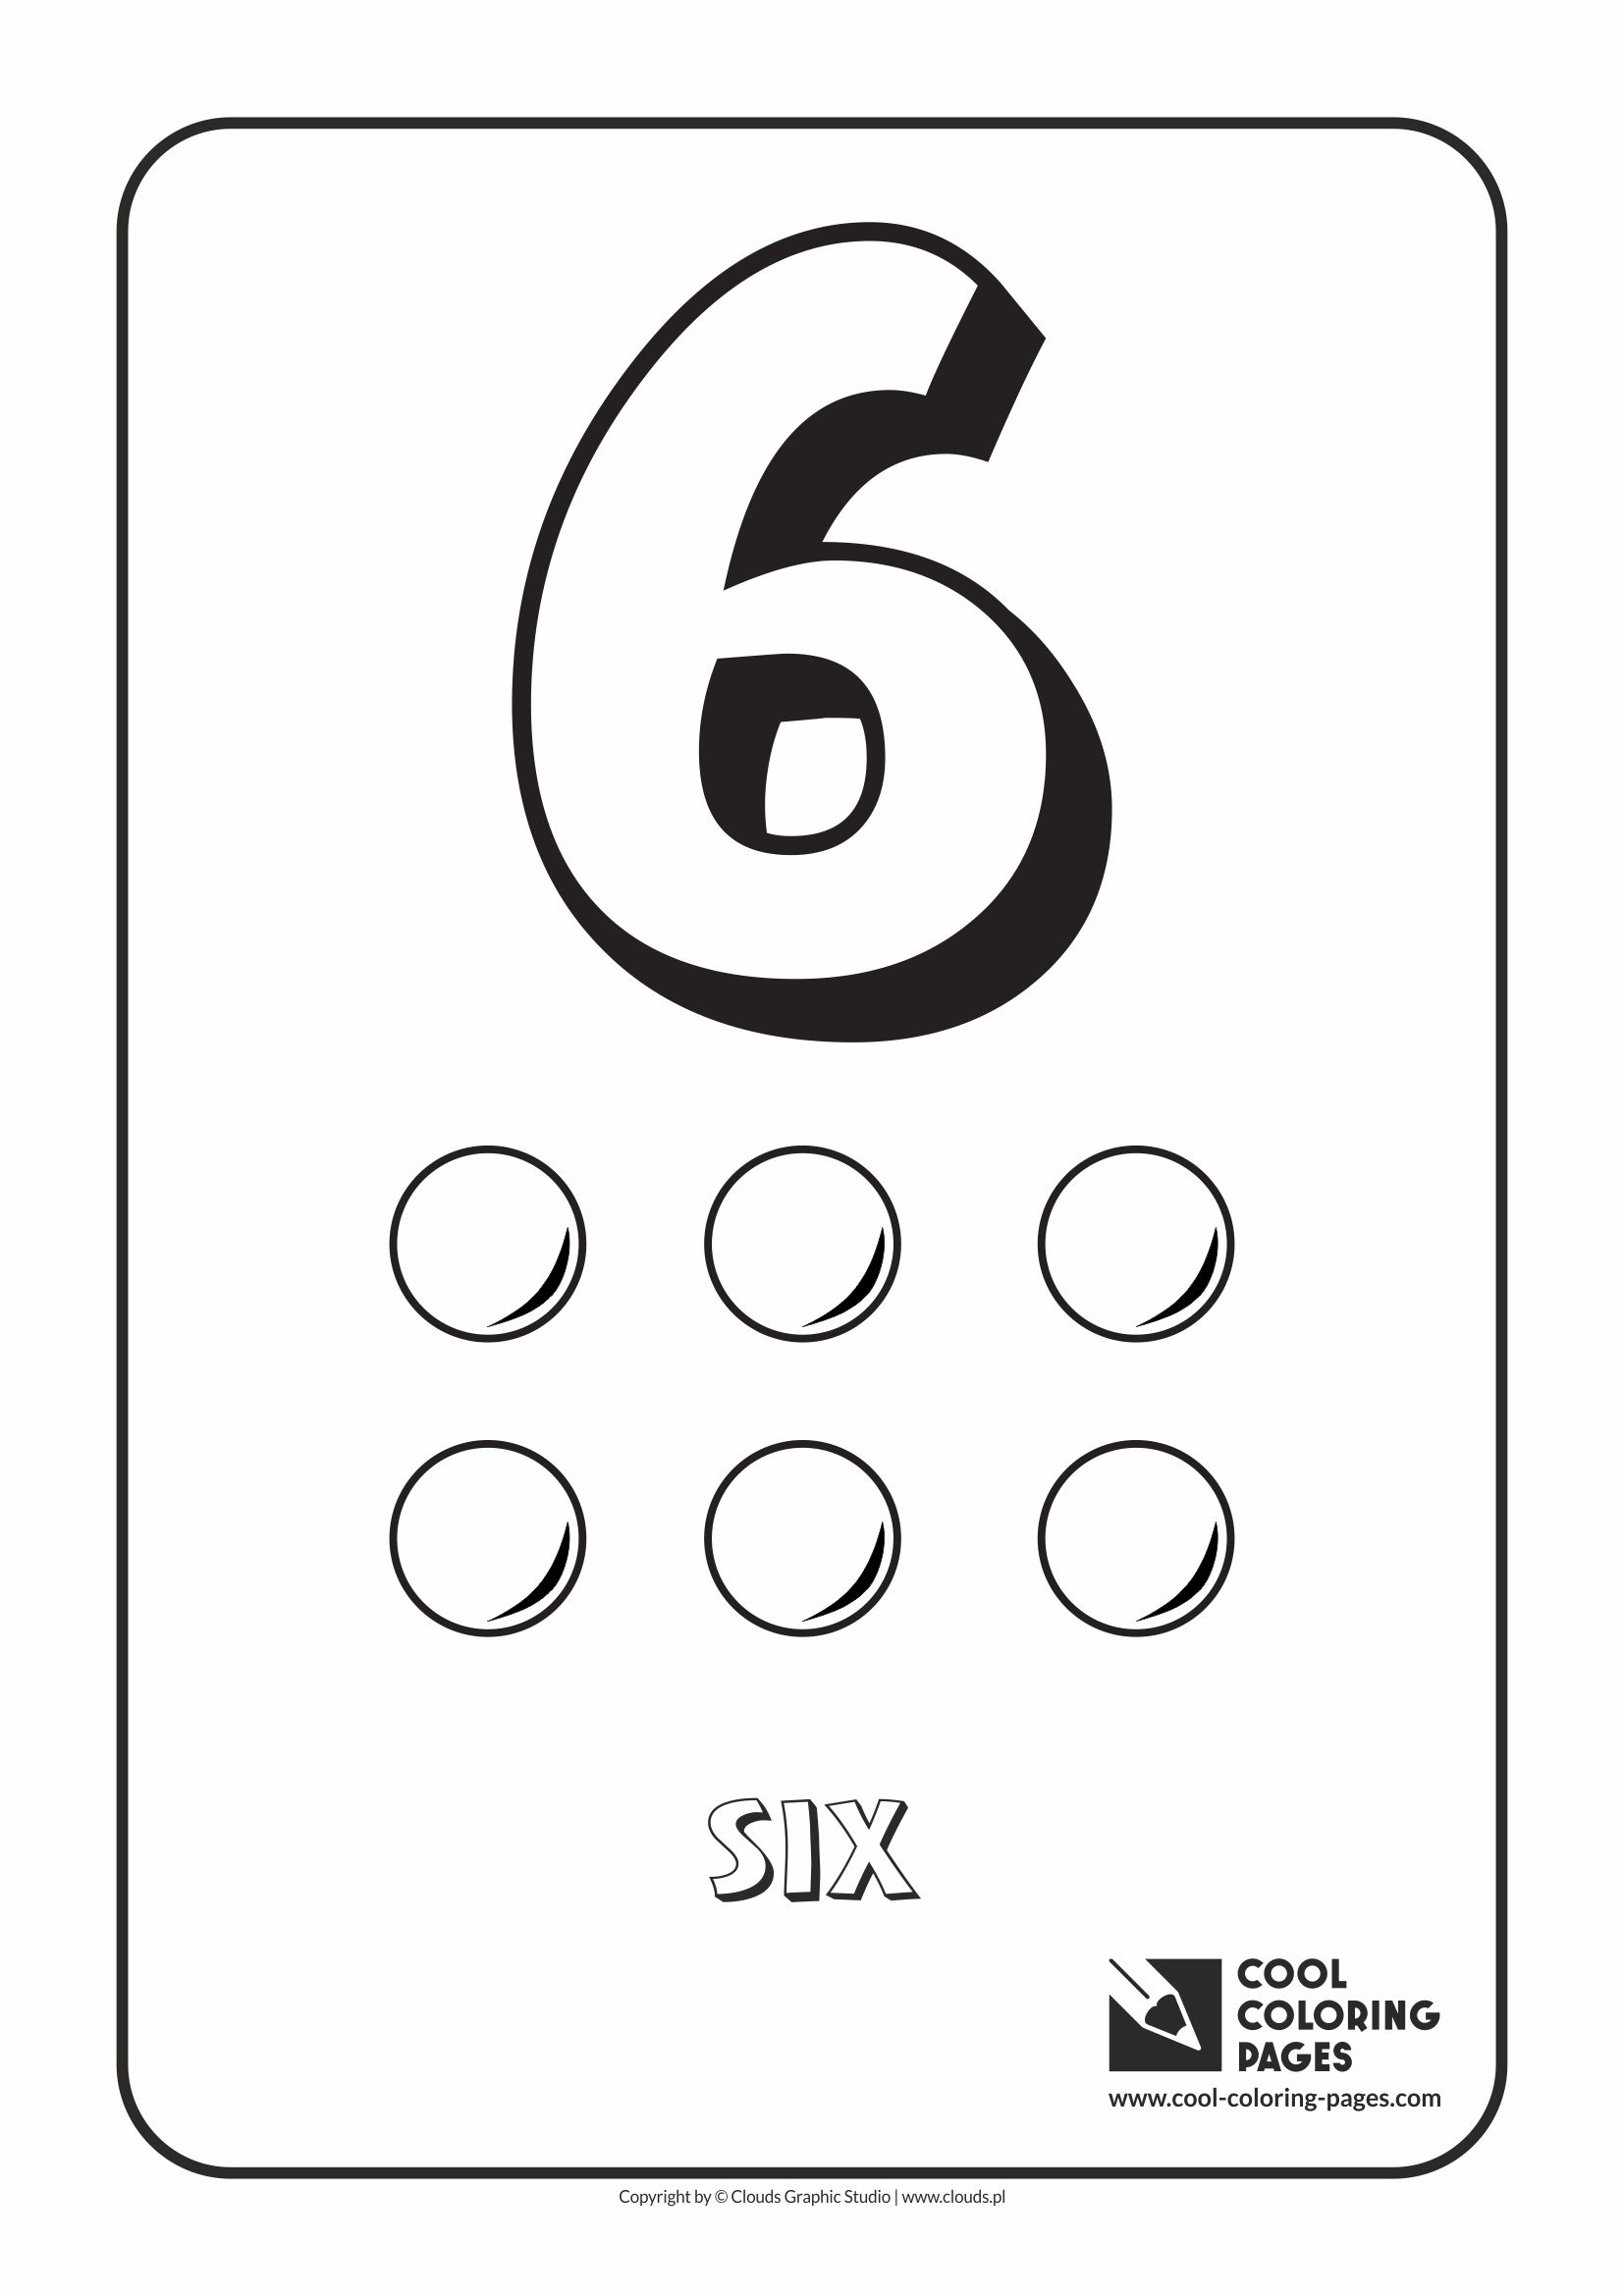 Cool Coloring Pages - Digits / Digit 6 / Coloring page with digit 6